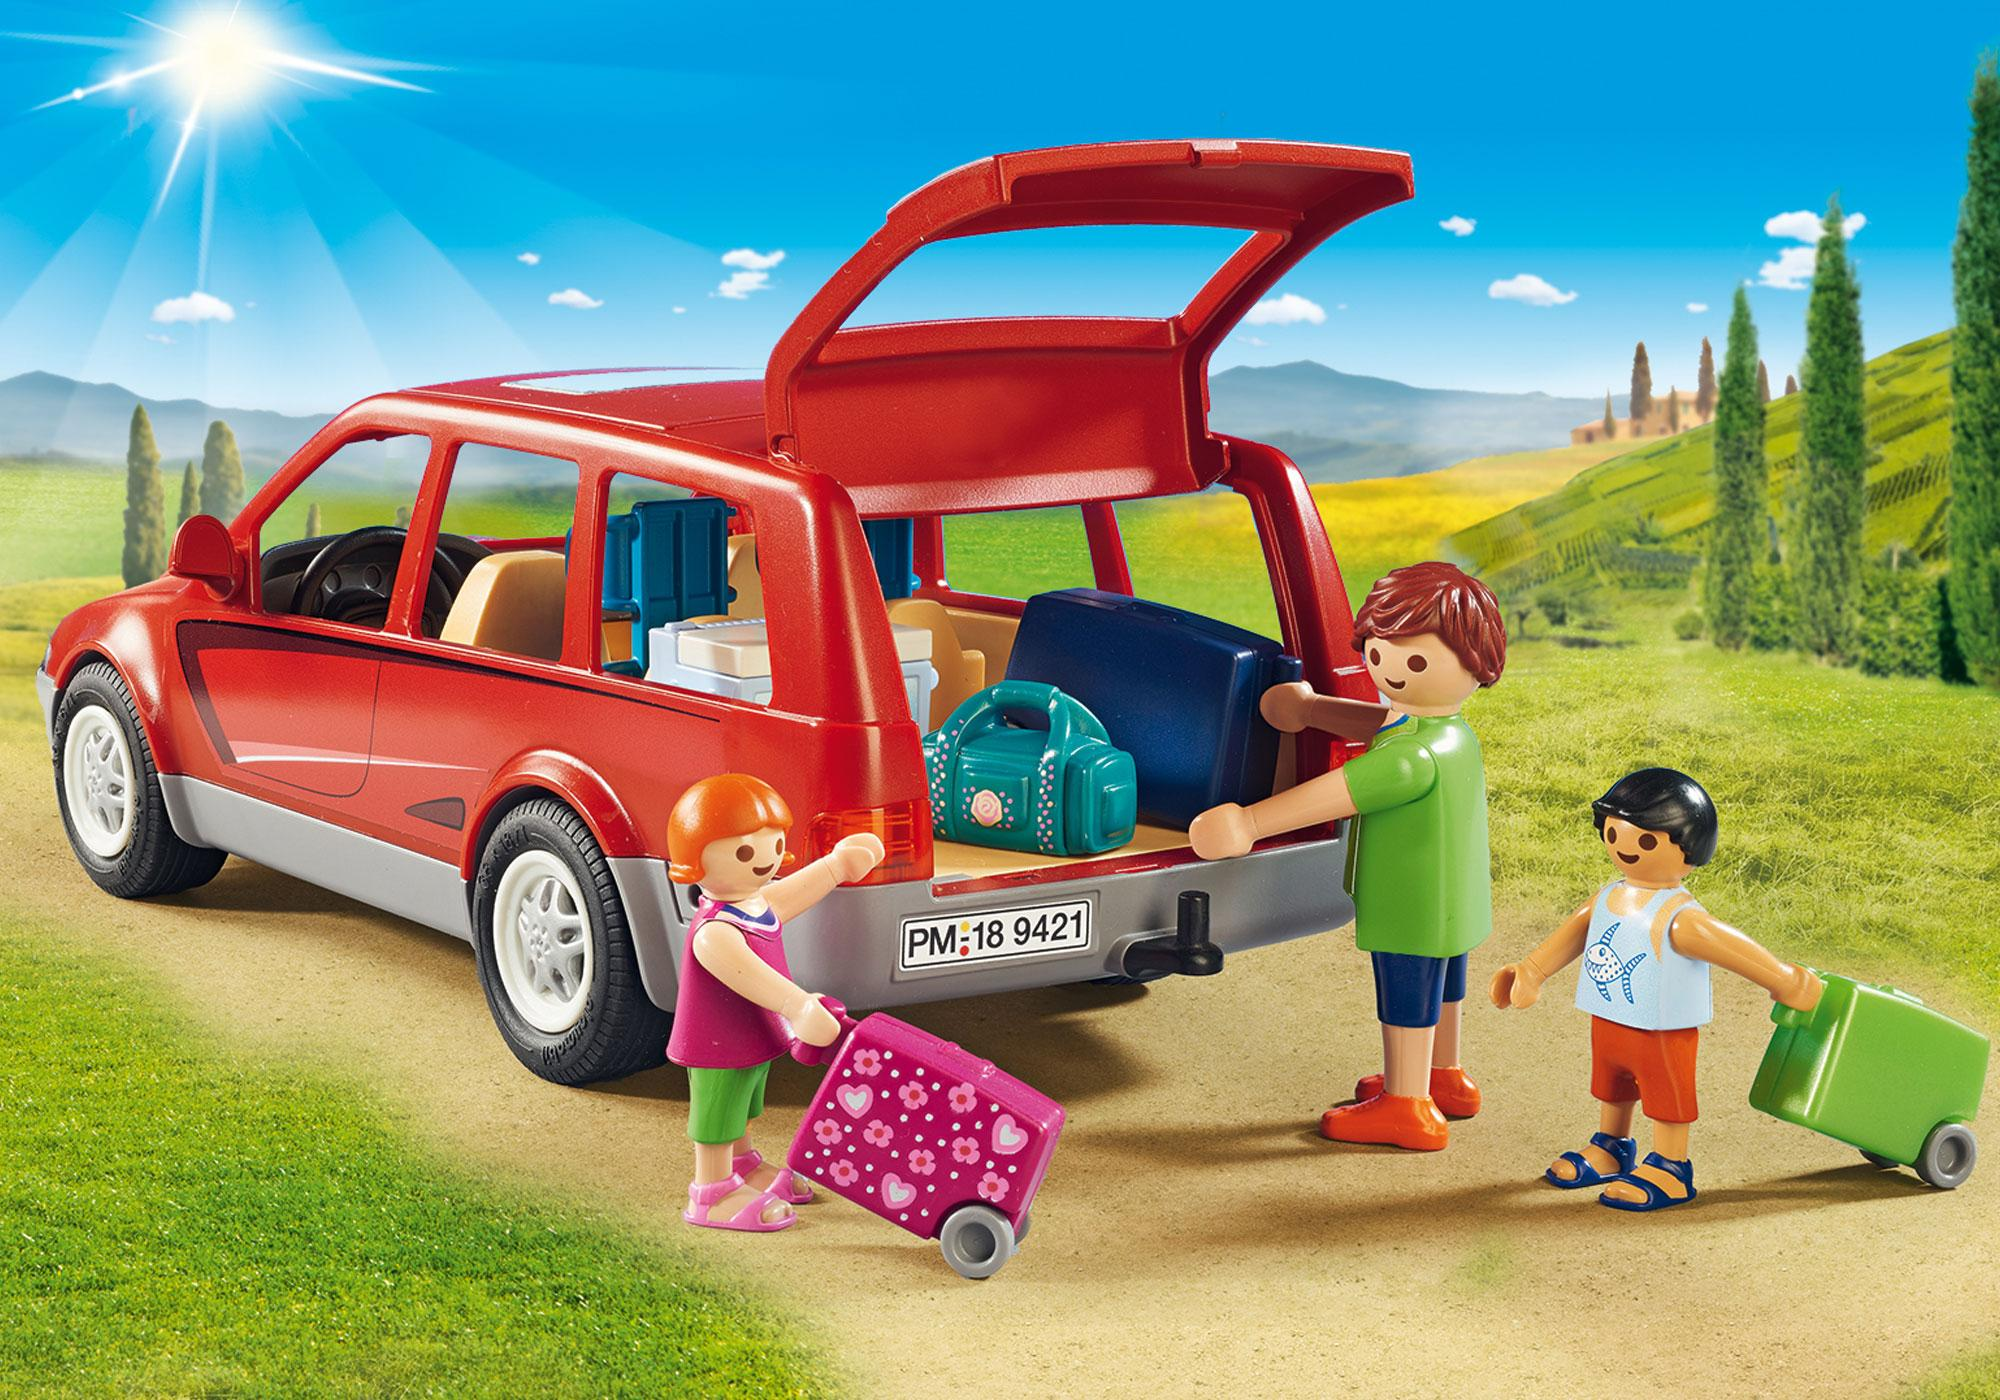 http://media.playmobil.com/i/playmobil/9421_product_extra1